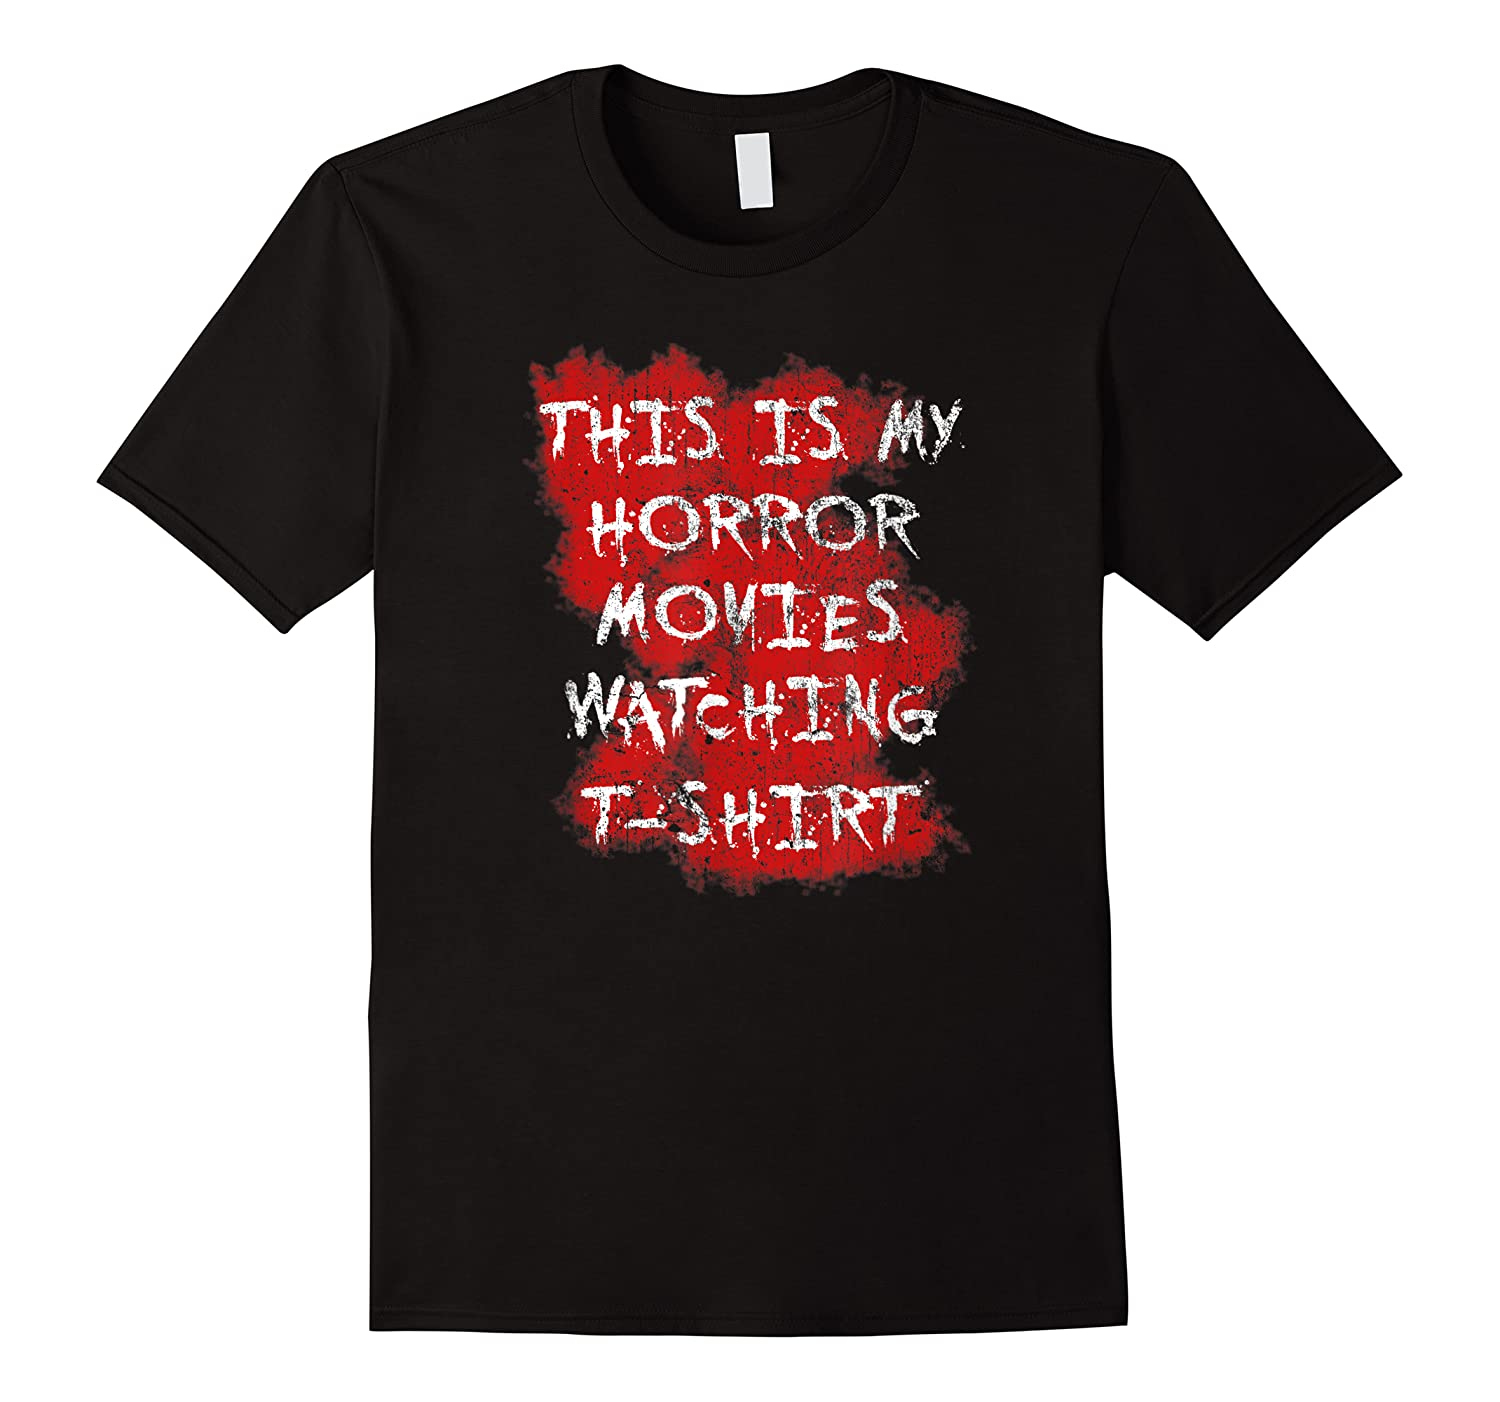 My Horror Movie Watching Tshirt - Scary Movie Lover Clothing